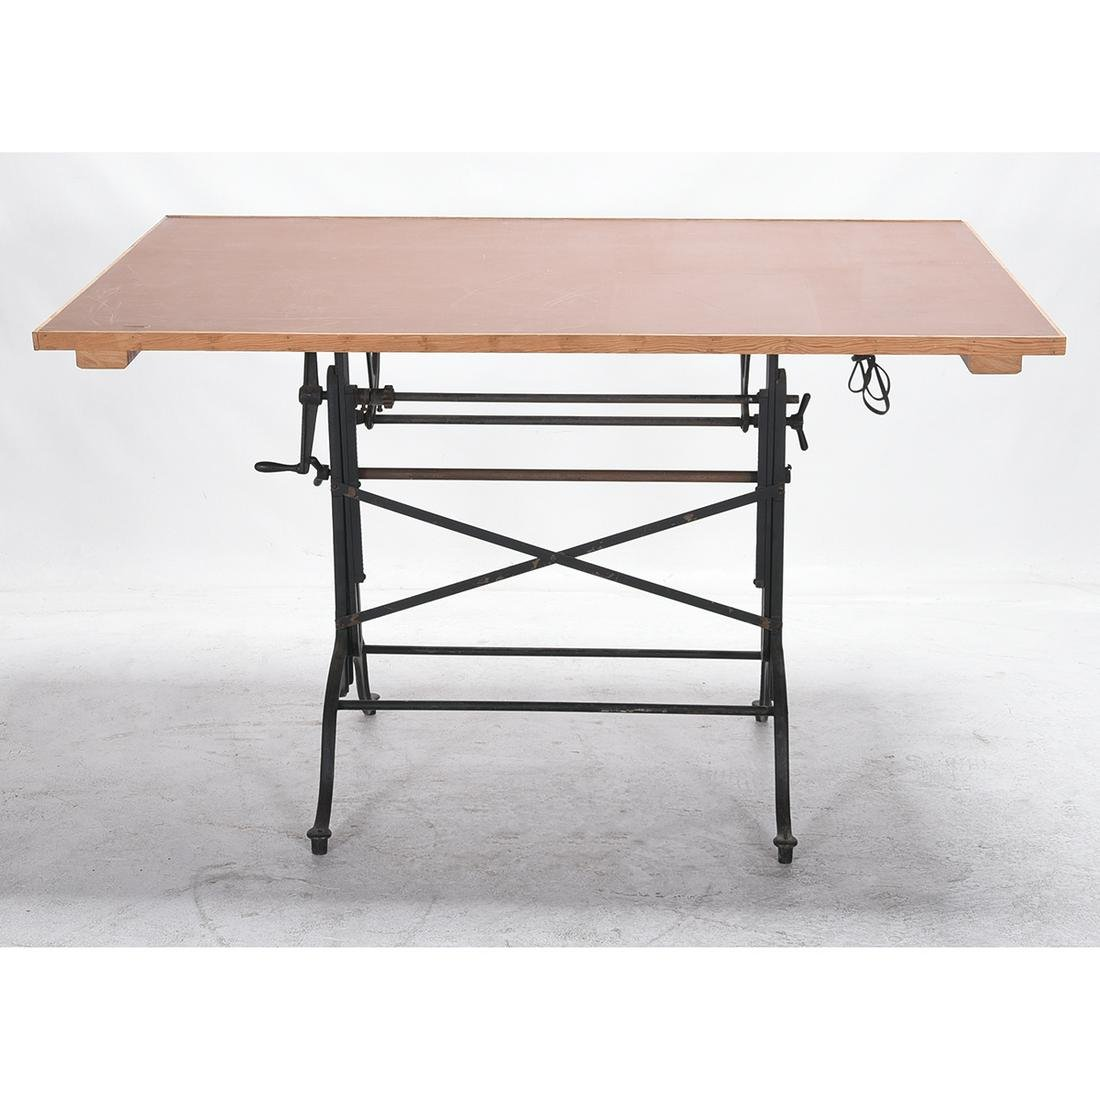 Industrial Chic Engineer's Table with Cast Iron Base